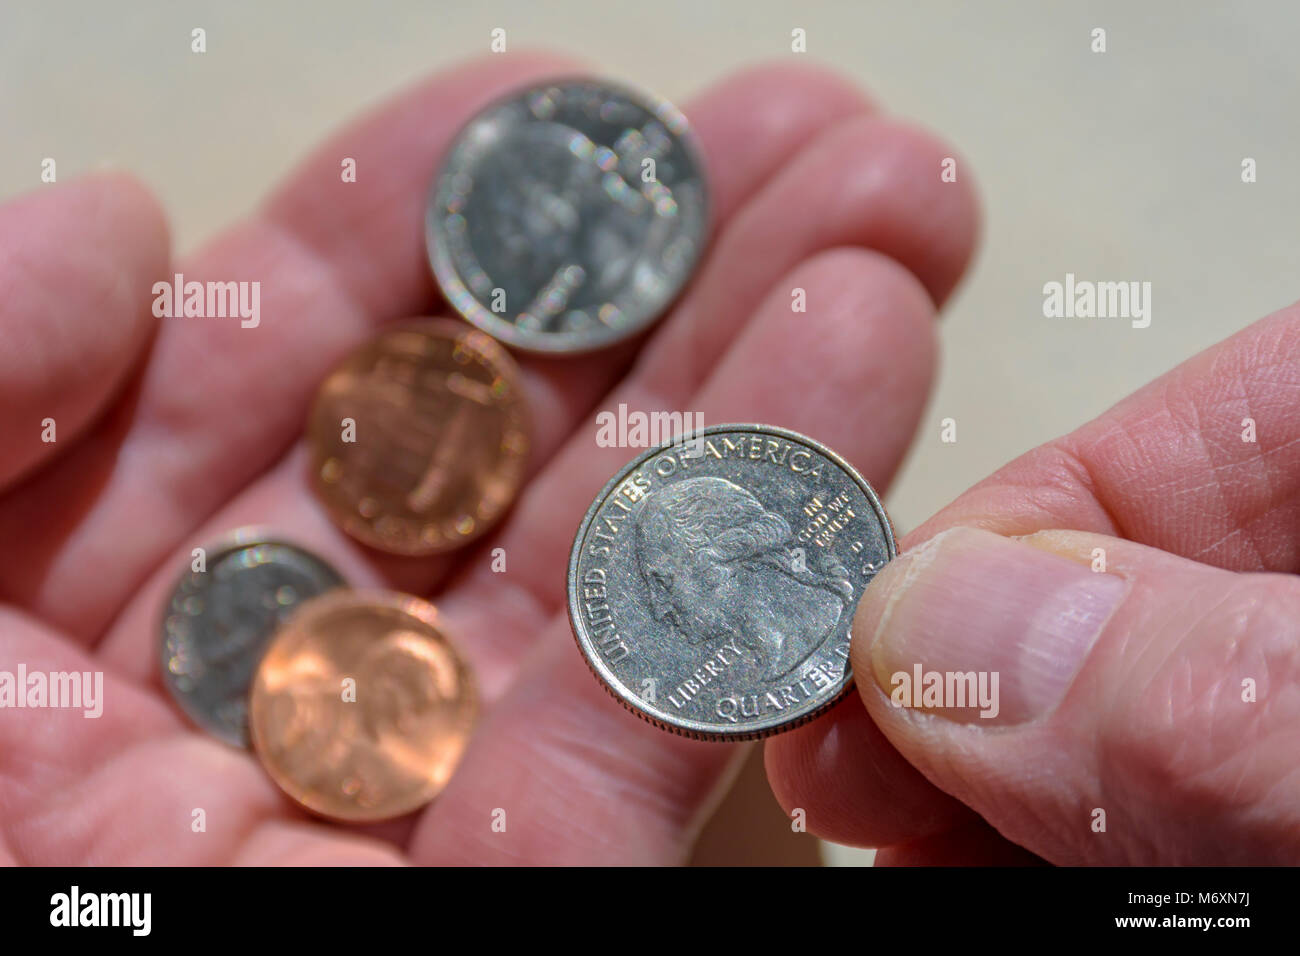 Detail shows counting United States coins or change. Or giving US change for in-store purchase. Could also illustrate - Stock Image